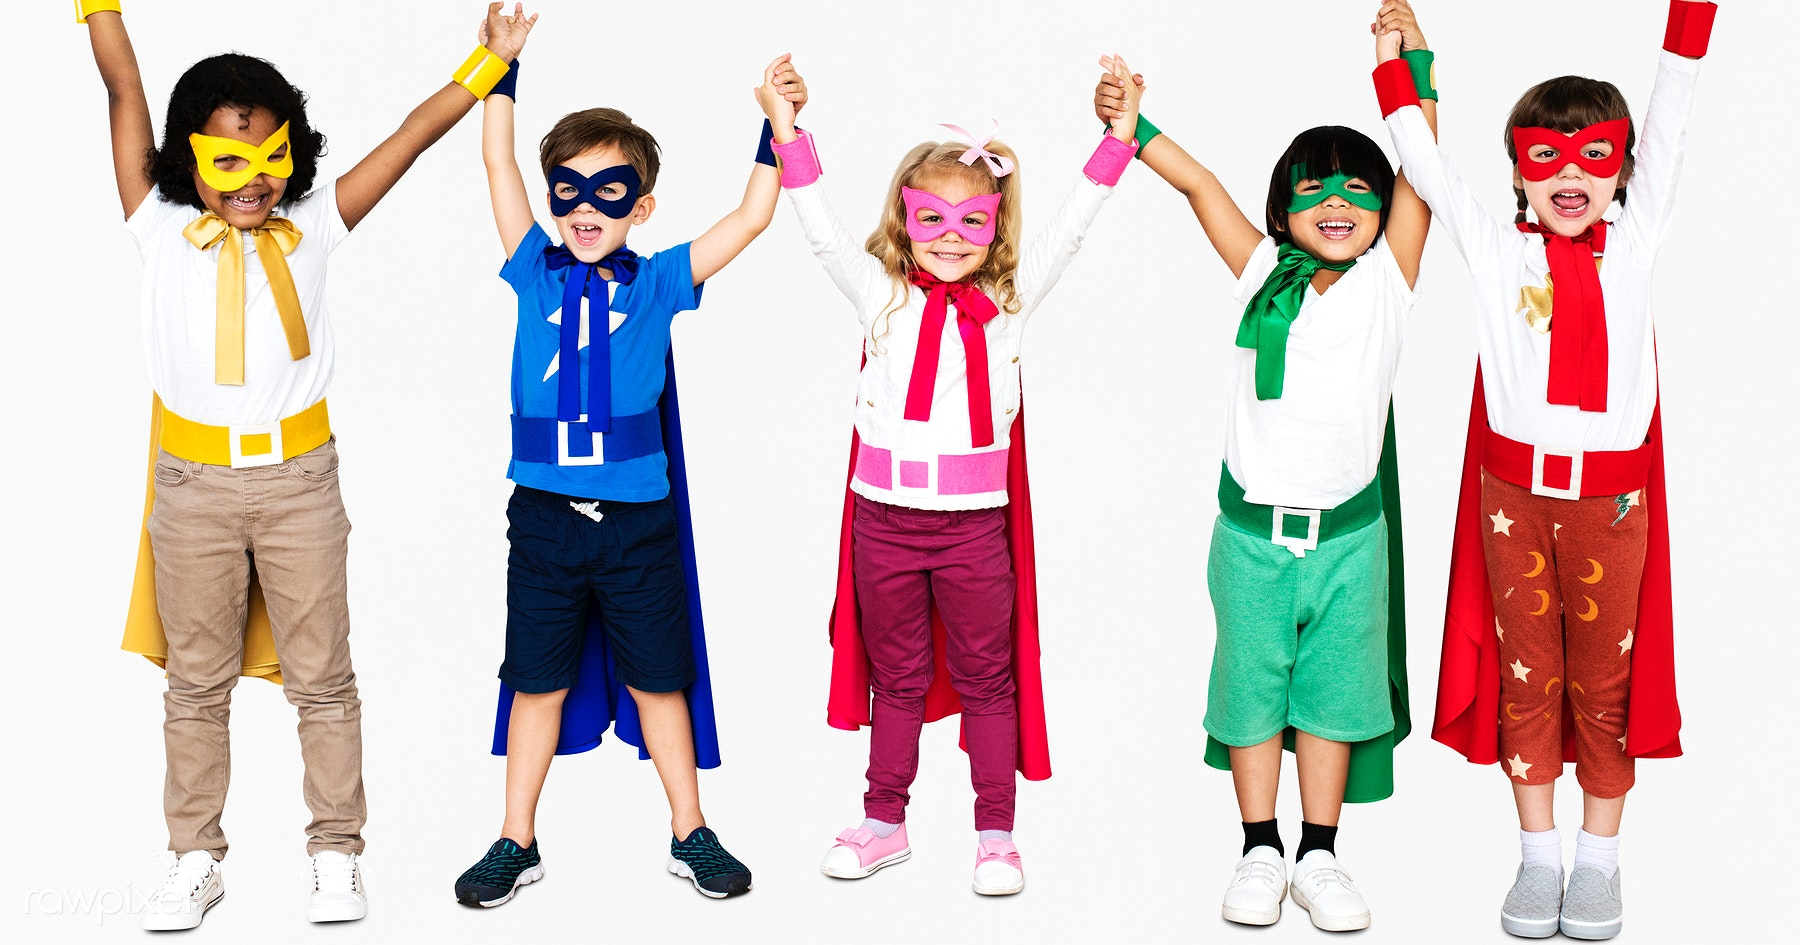 e8720afd63f37 Cheerful kids wearing superhero costumes and holding hands. Premium Royalty  Free PSD